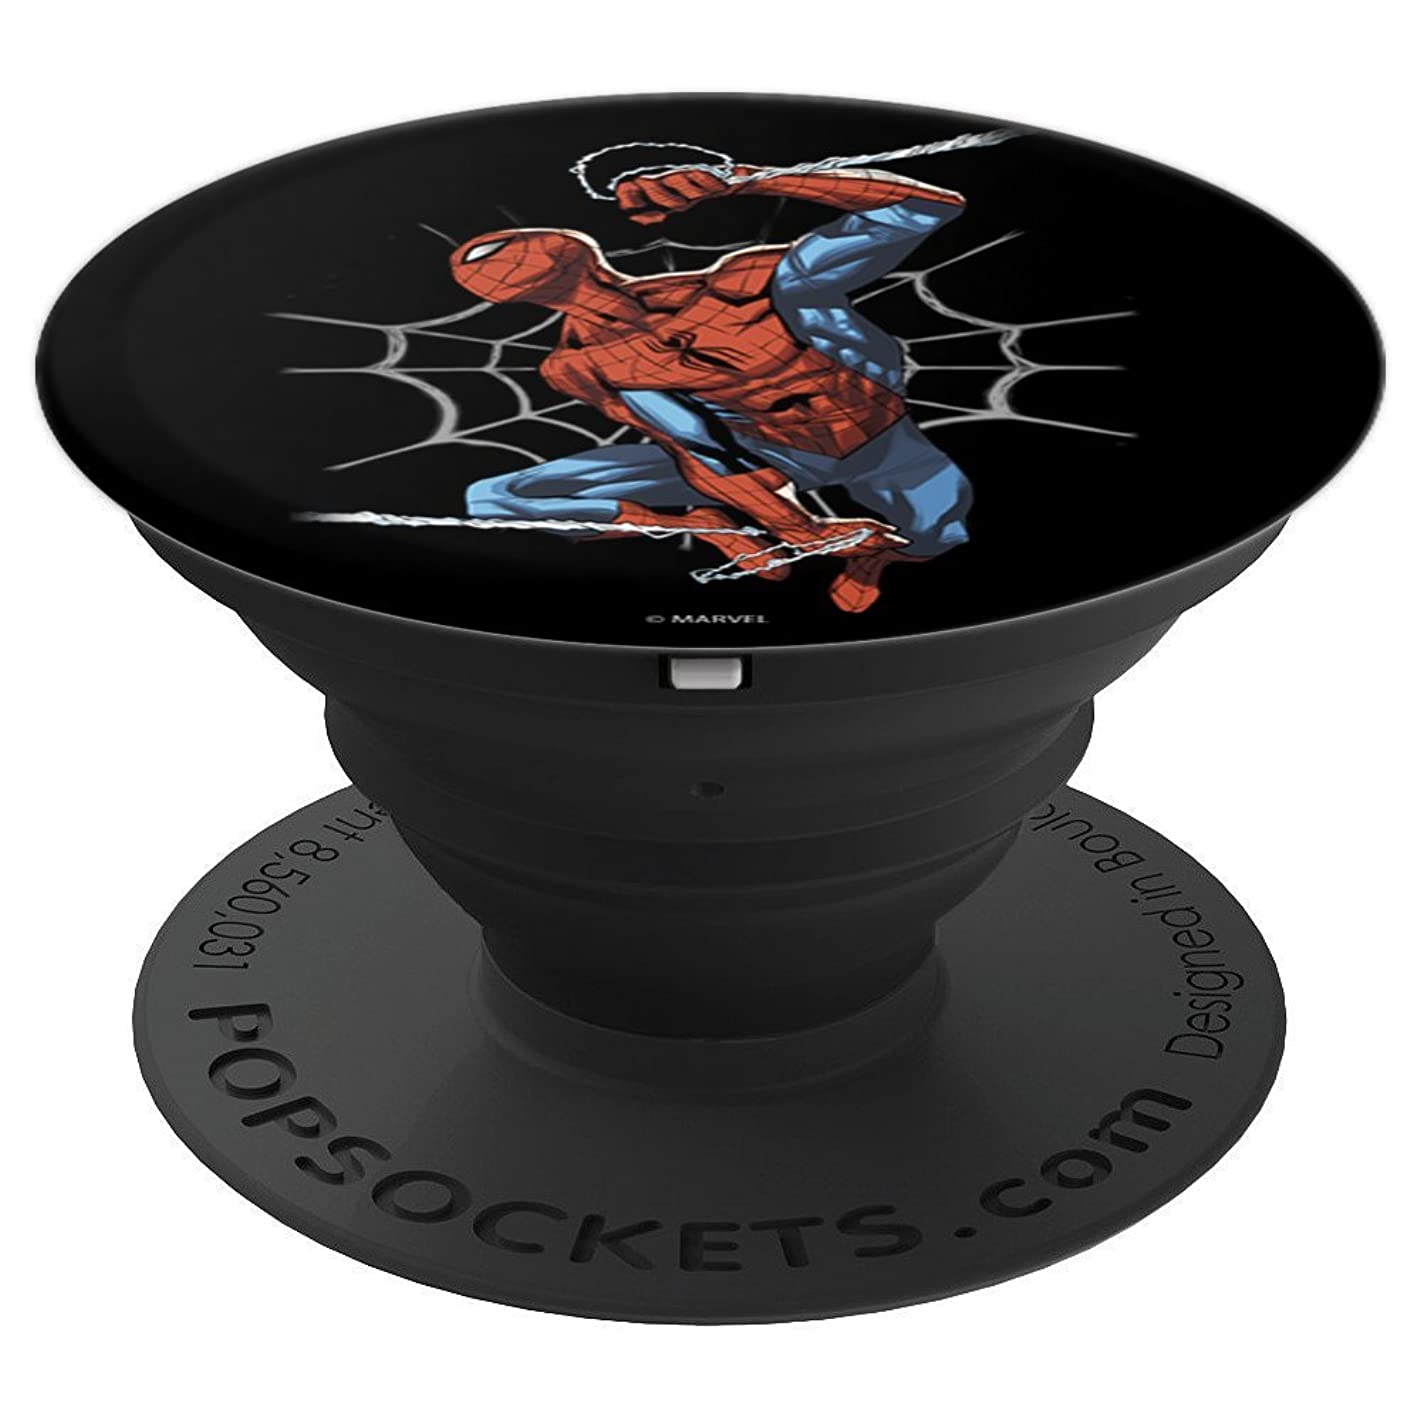 Marvel Spiderman Web Action - PopSockets Grip and Stand for Phones and Tablets